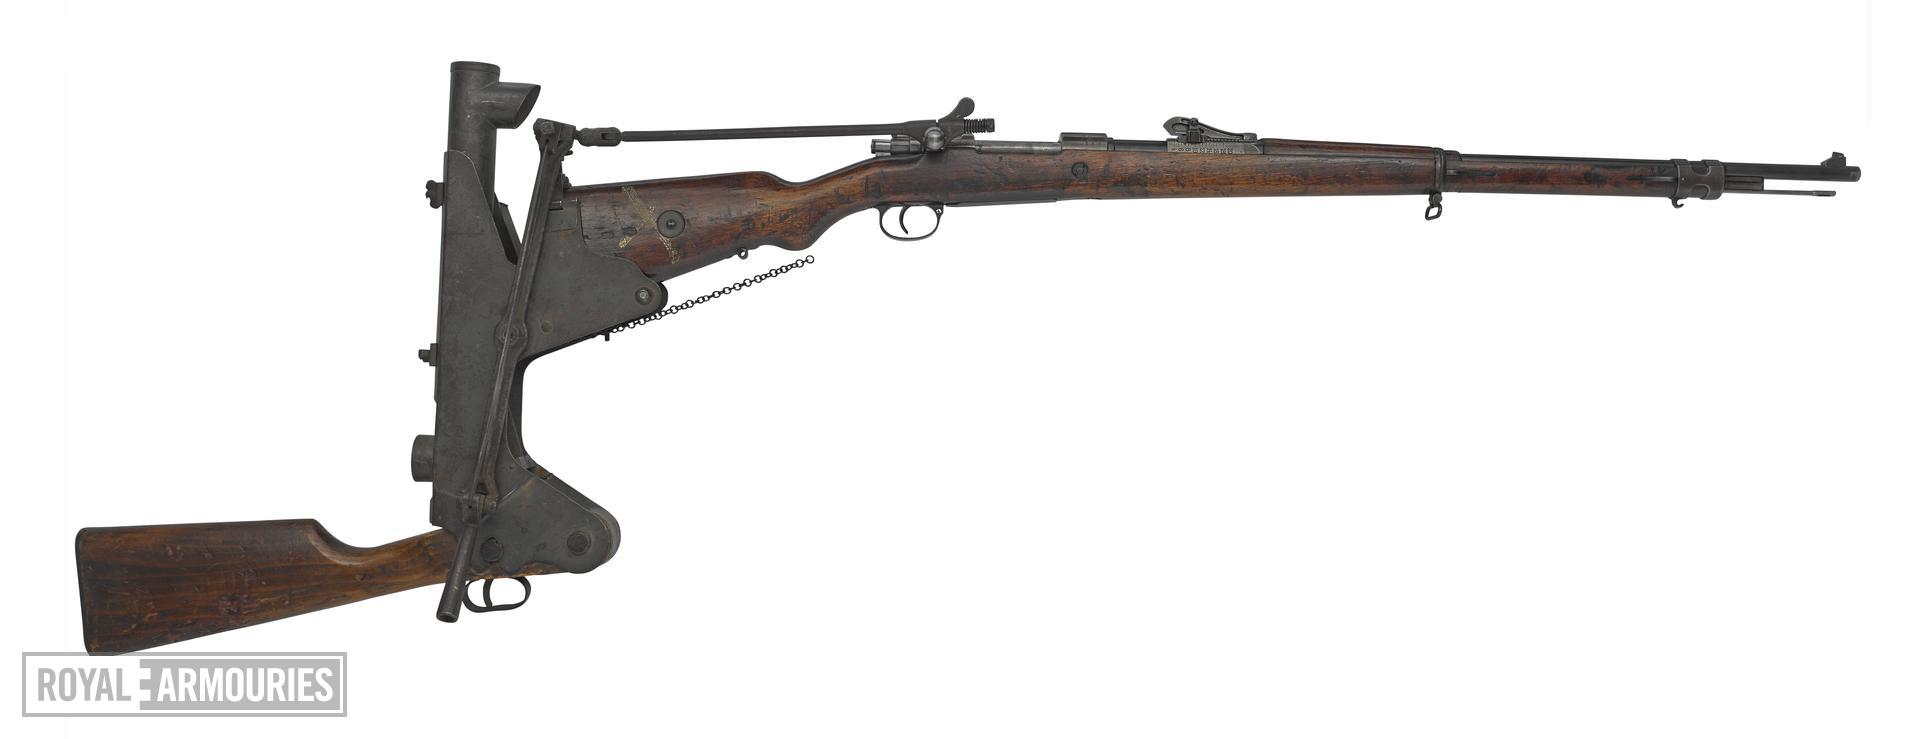 Mauser Gewehr 98 (Gew98) centrefire bolt action rifle with trench firing device, Germany, 1916. Fitted with trench firing device (XIII.1099) enabling rifles to be loaded and fired over a parapet.